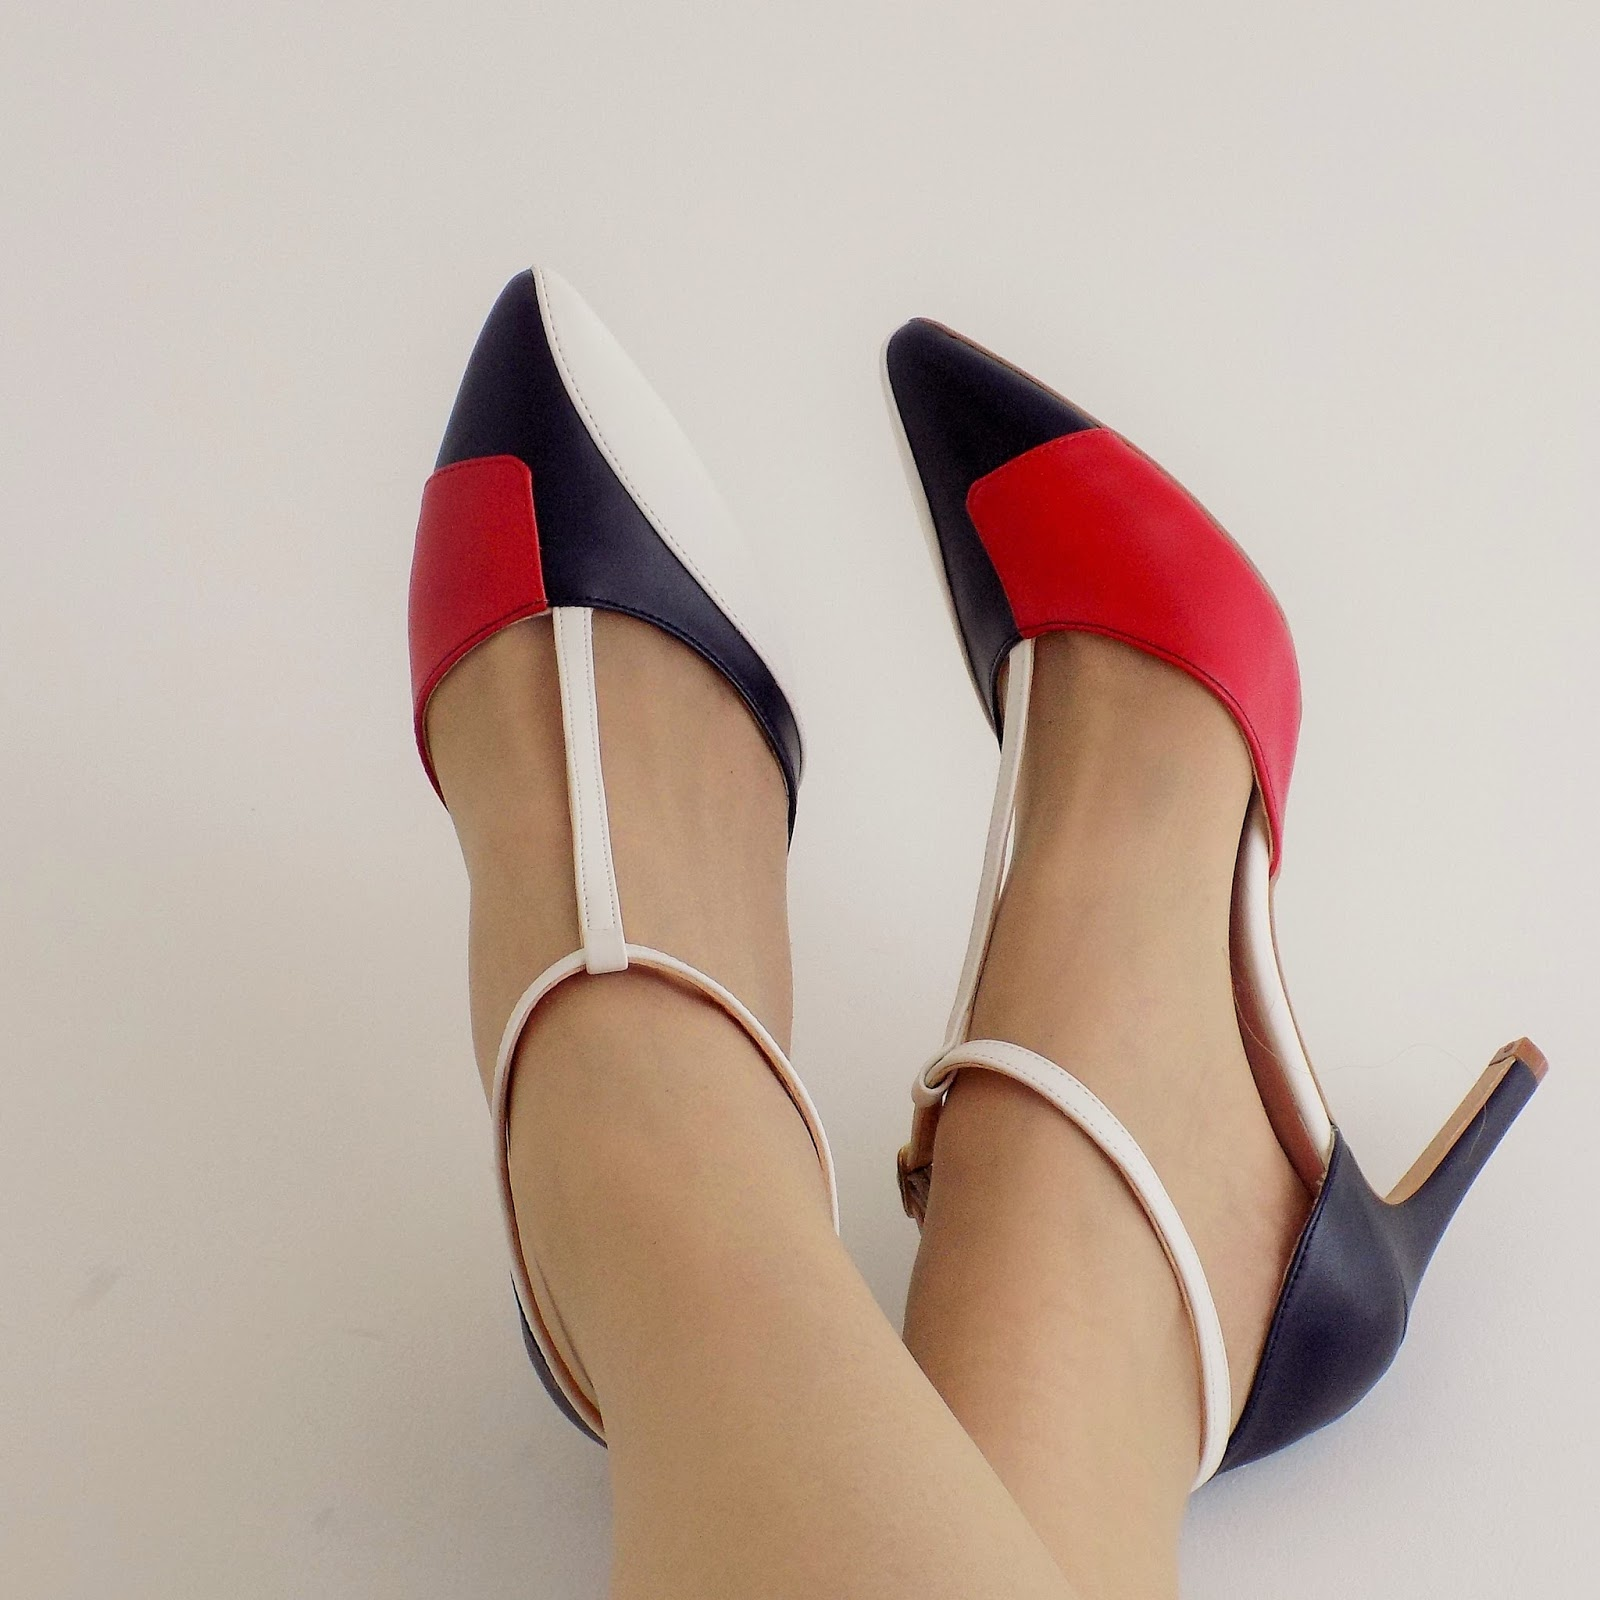 Red, white and blue colourblock shoes by Kaleidoscope